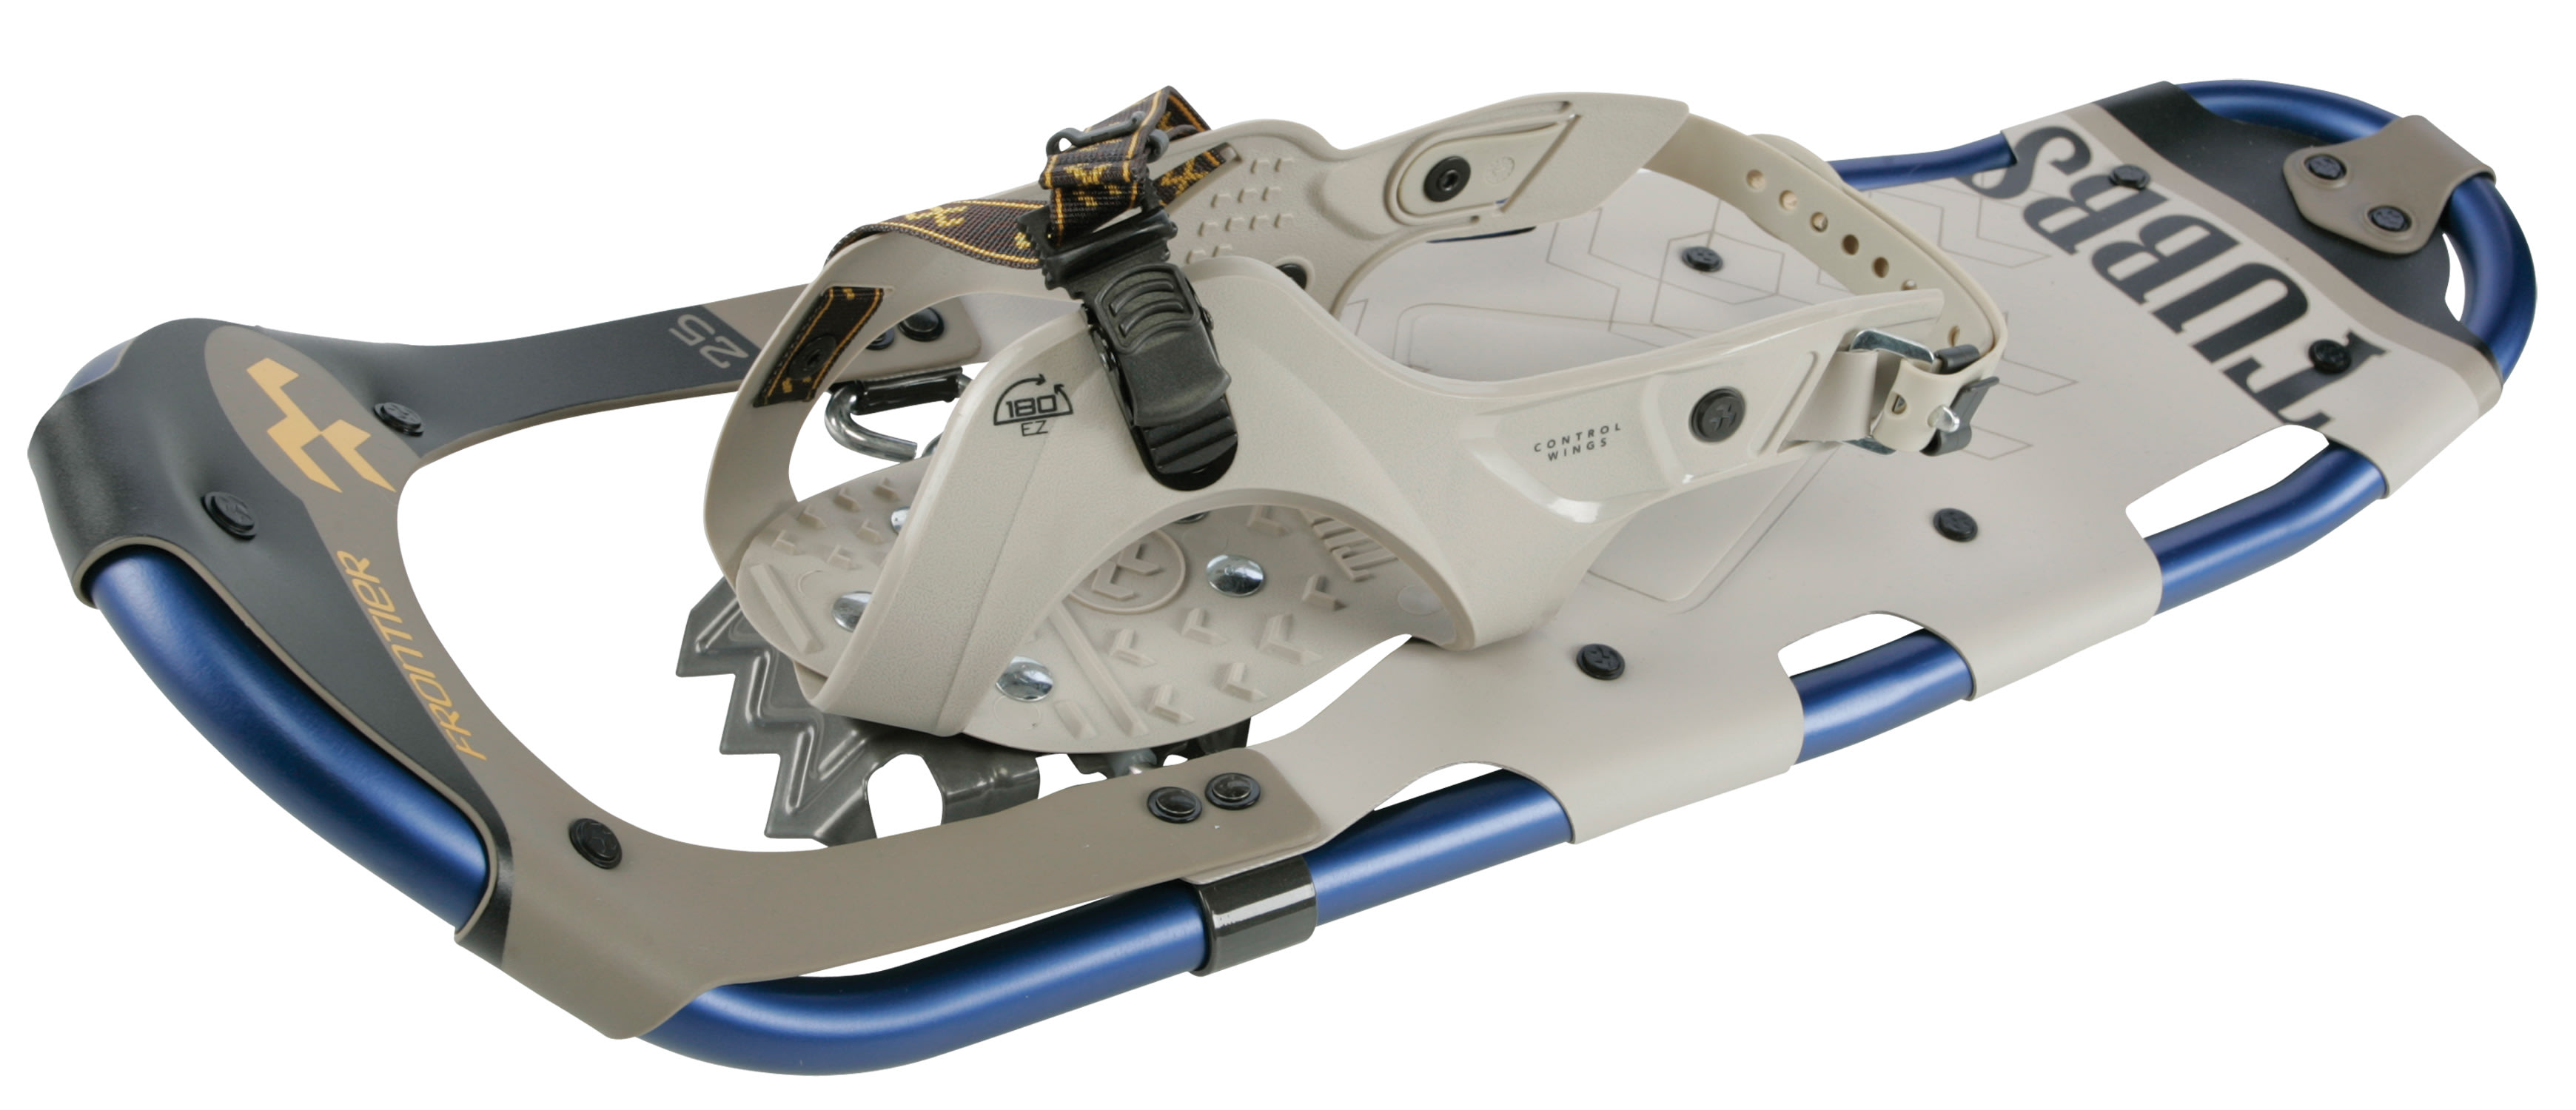 On Sale Tubbs Frontier 30 Snowshoes Up To 50 Off